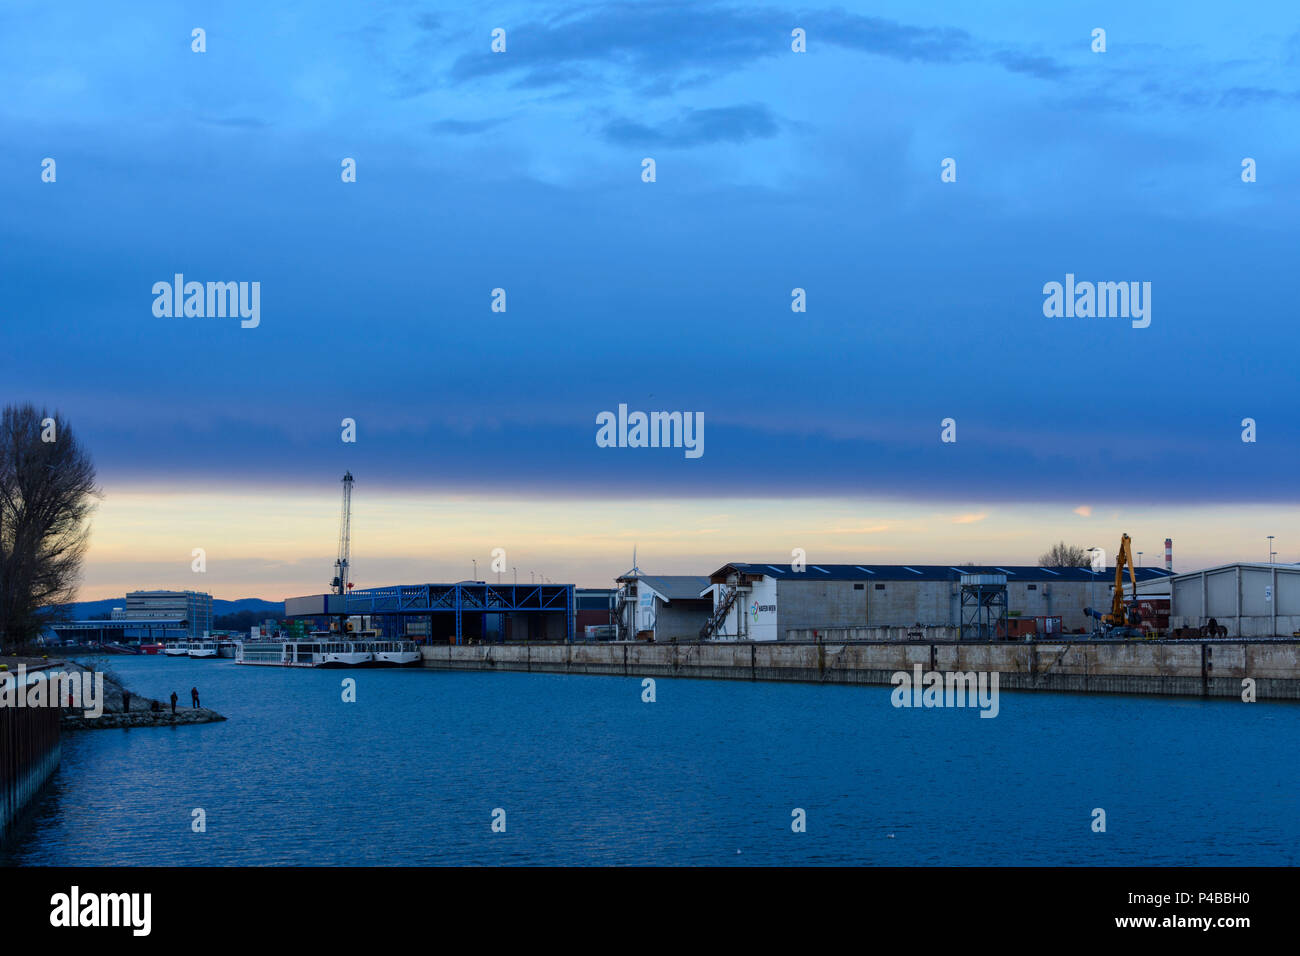 Vienna, port of Vienna, cruise ships anchored in winter off season, 02. Leopoldstadt, Wien, Austria - Stock Image